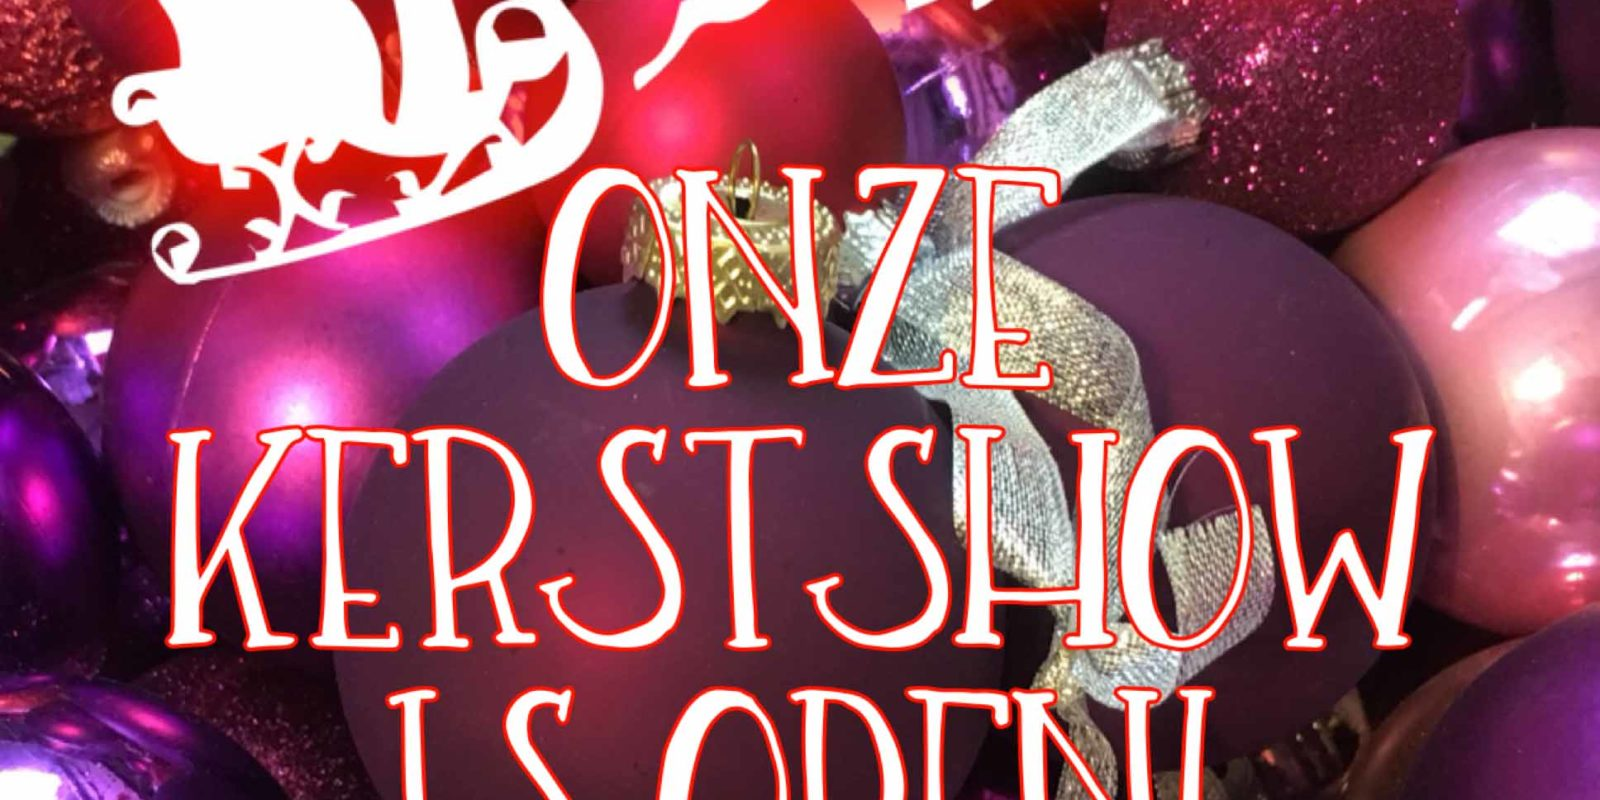 Kerstshow Twiddus is open